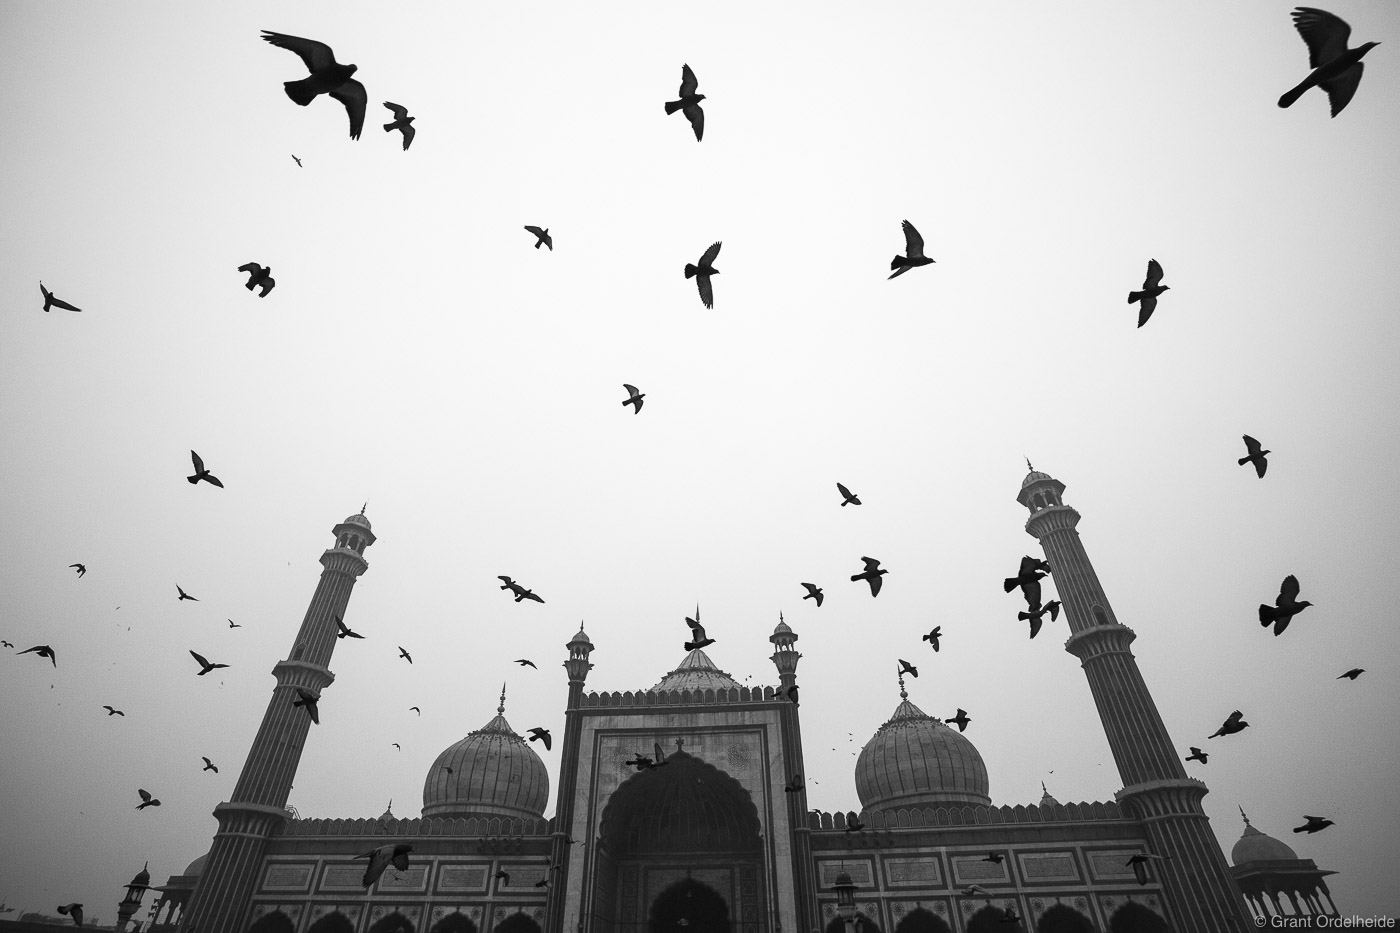 Pigeons flying above theJama Masjid Mosque in New Delhi, one of biggestand best known mosques in India.